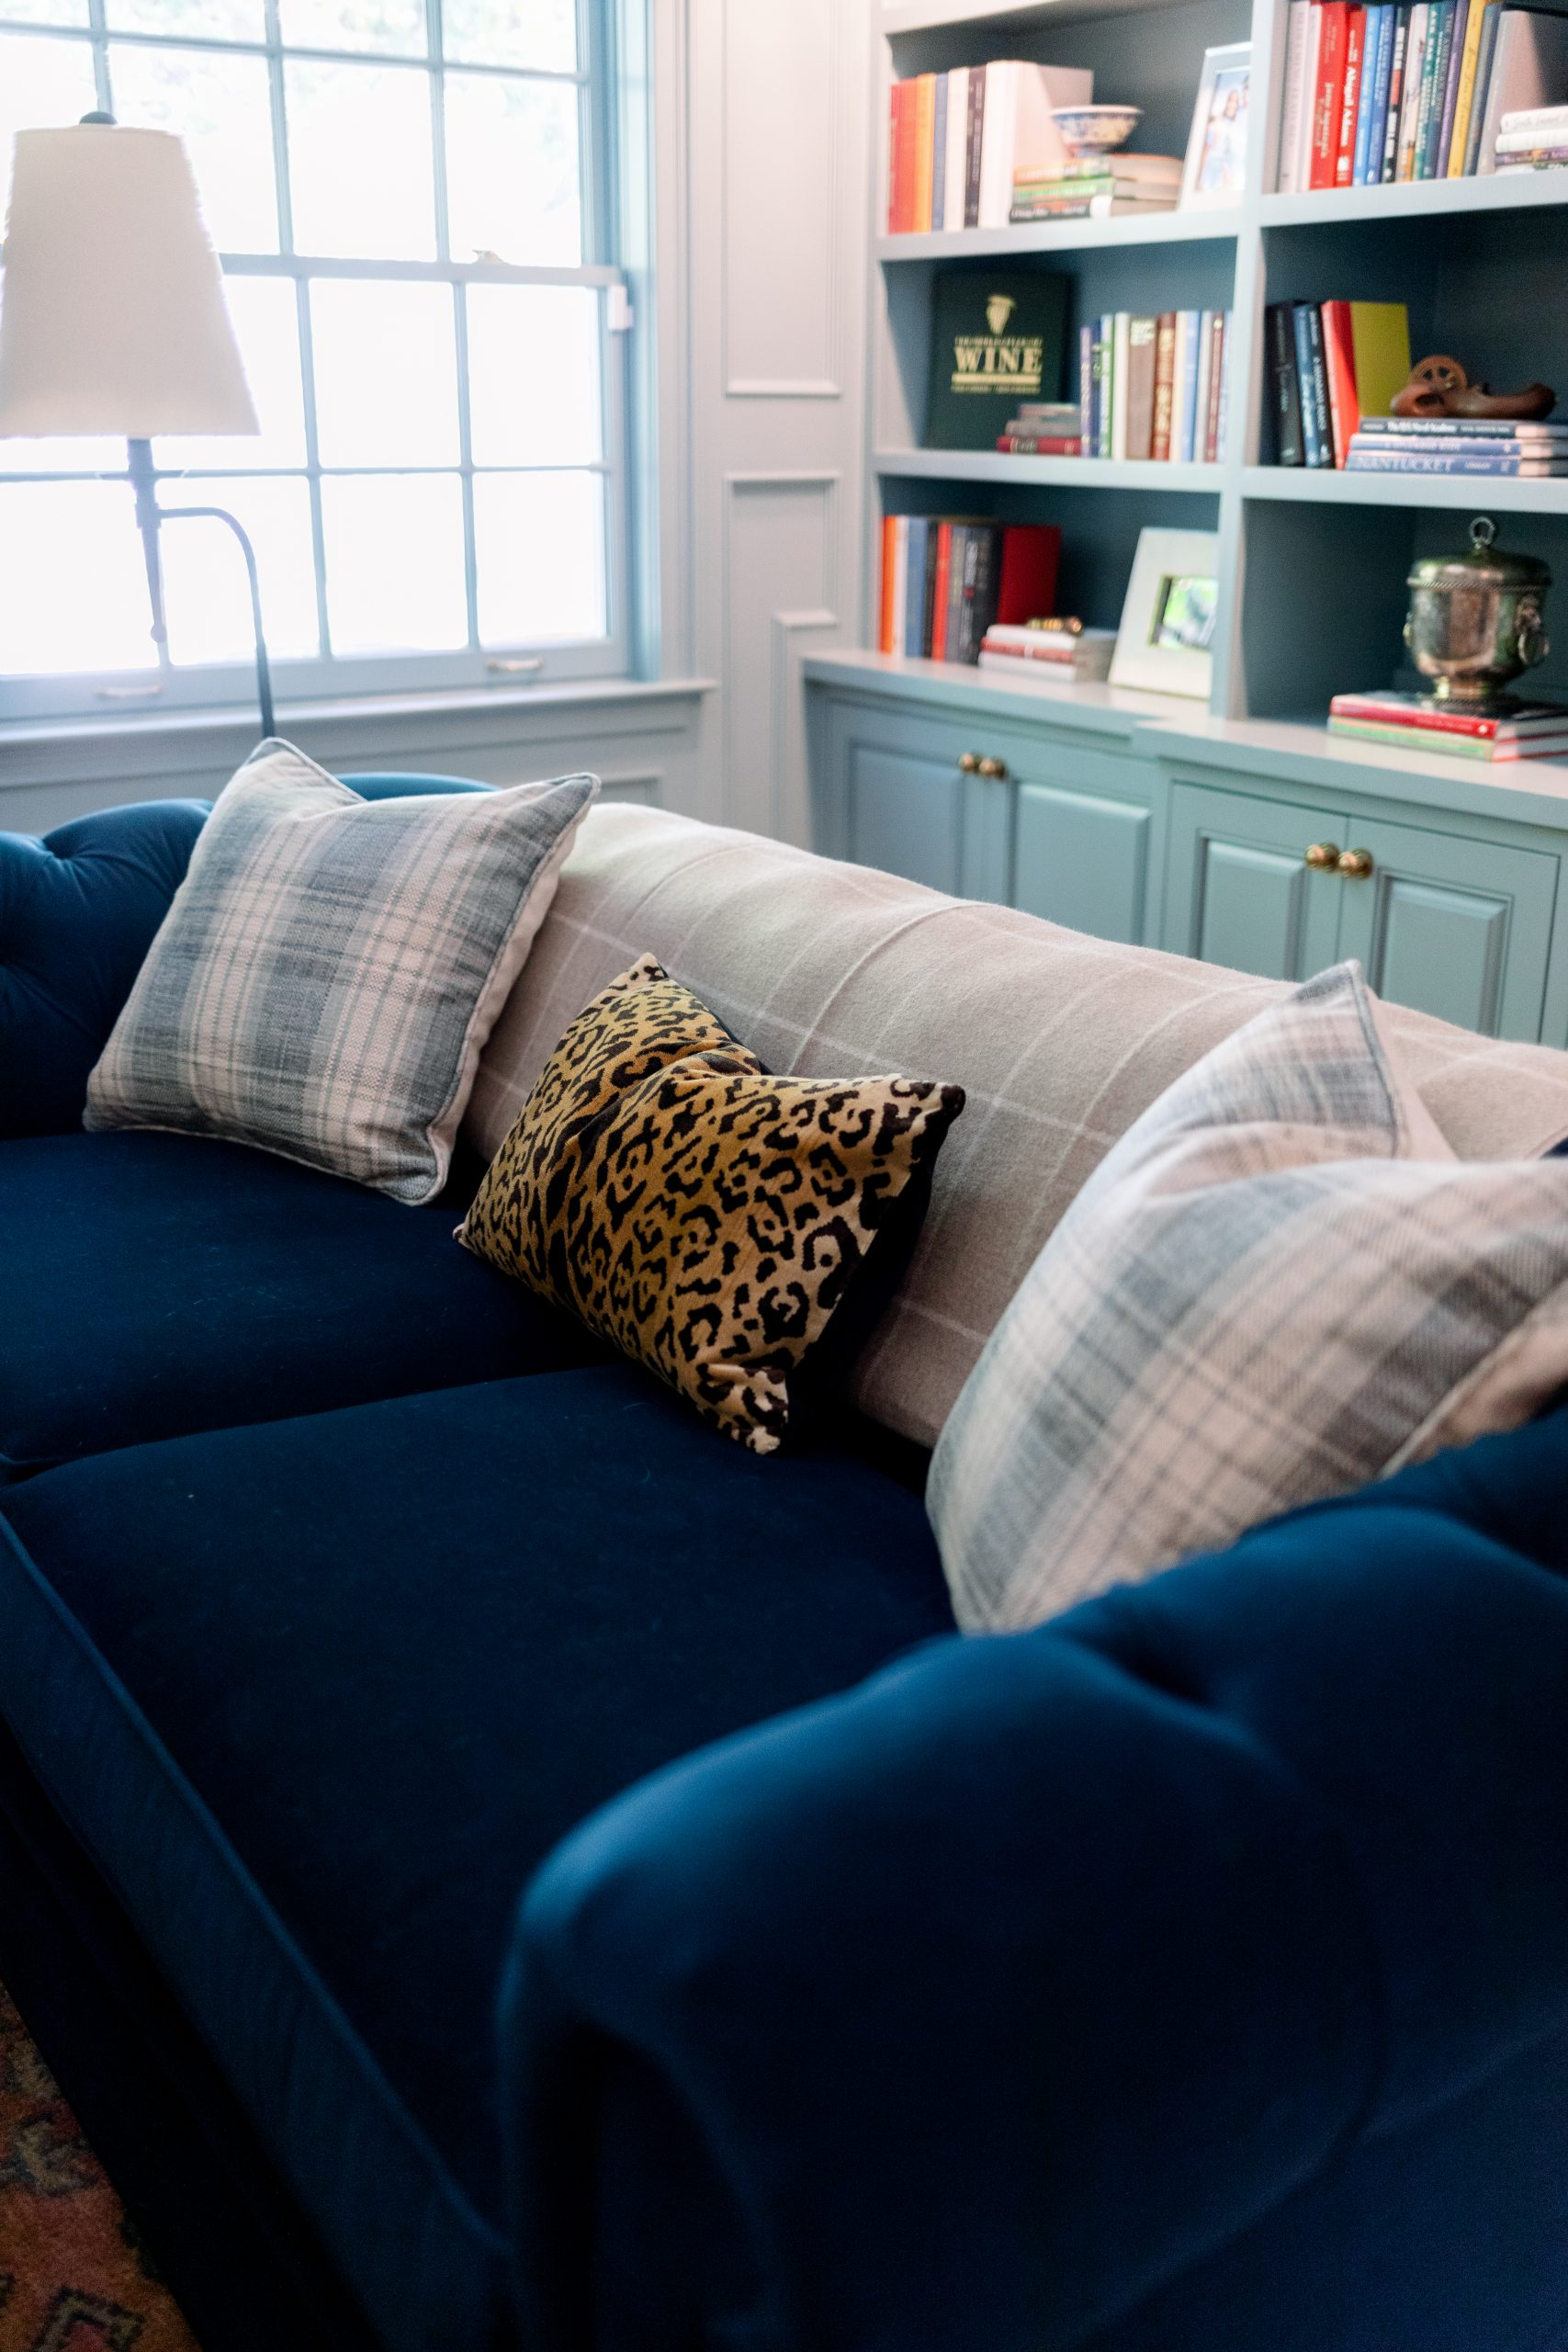 Blue Velvet Sofa with Plaid and Leopard Print pillows